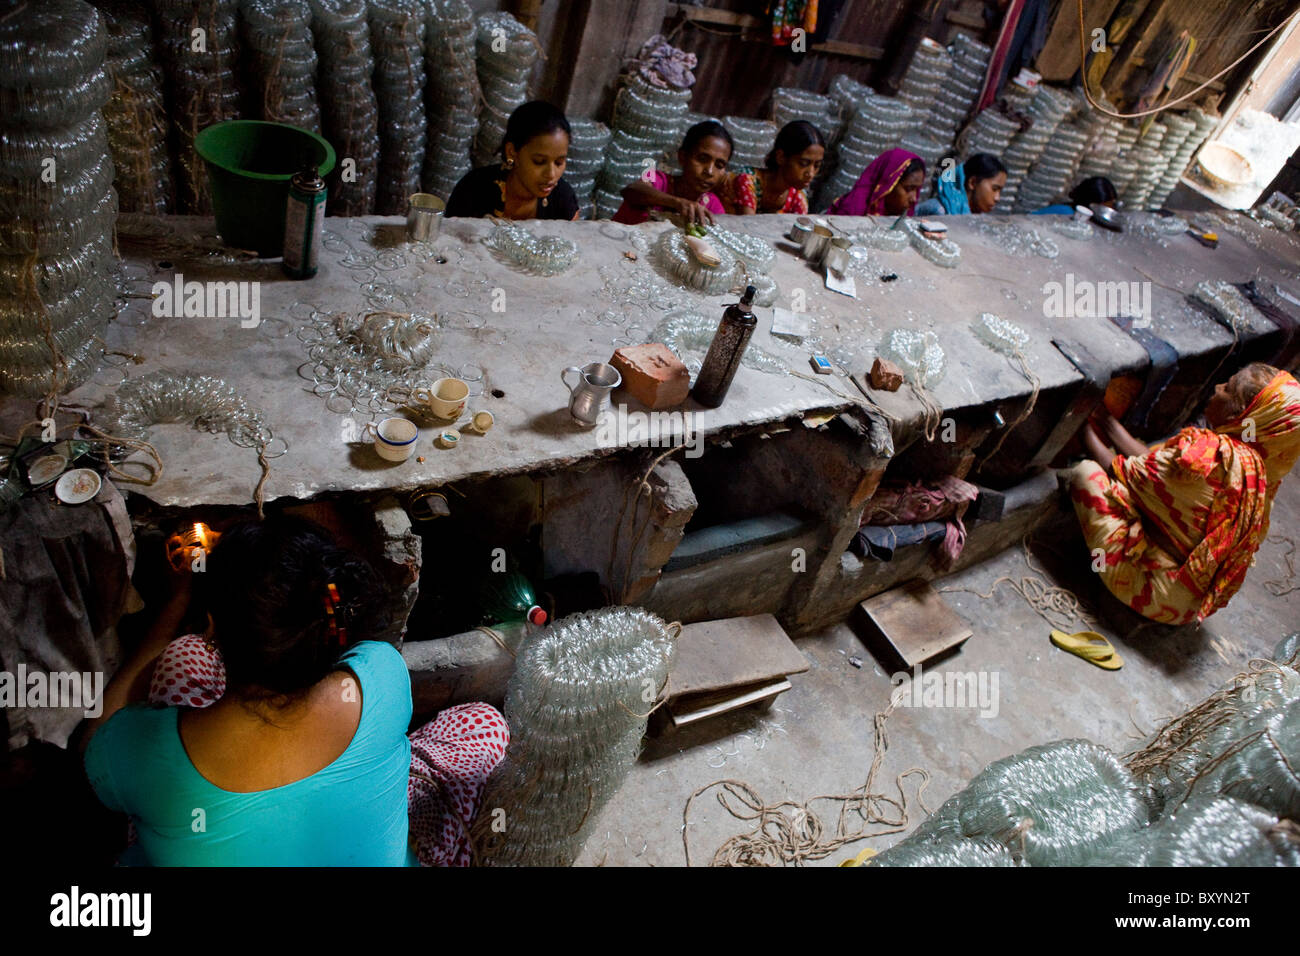 Women workers making bangles in a sweat shop in Old Dhaka, Bangladesh - Stock Image